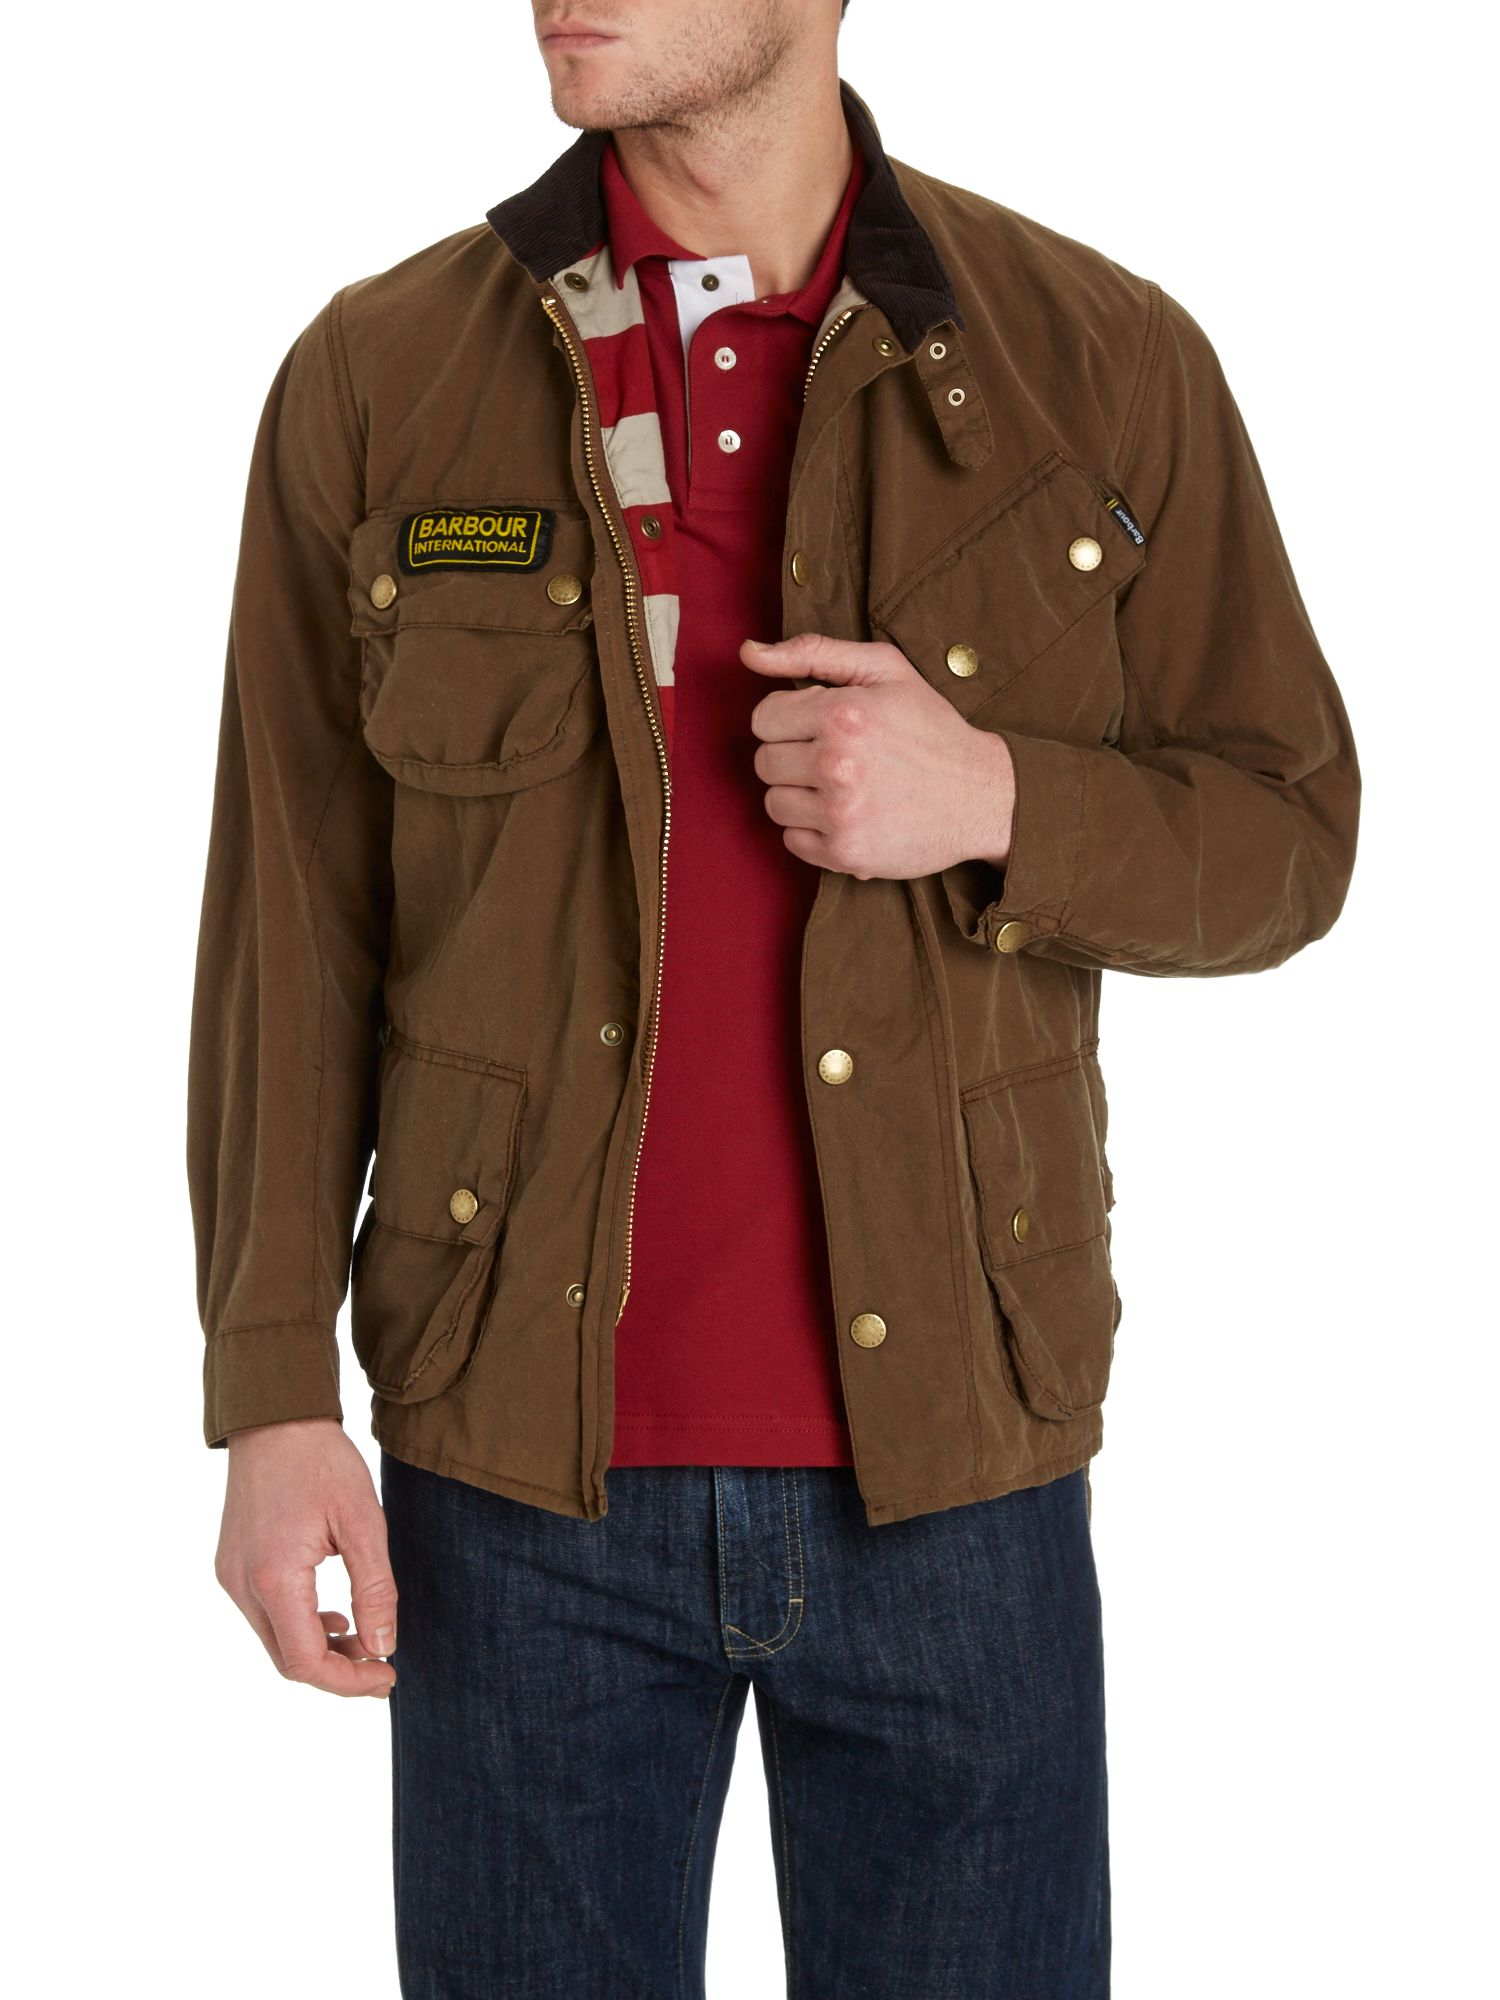 Steve McQueen washington wax jacket